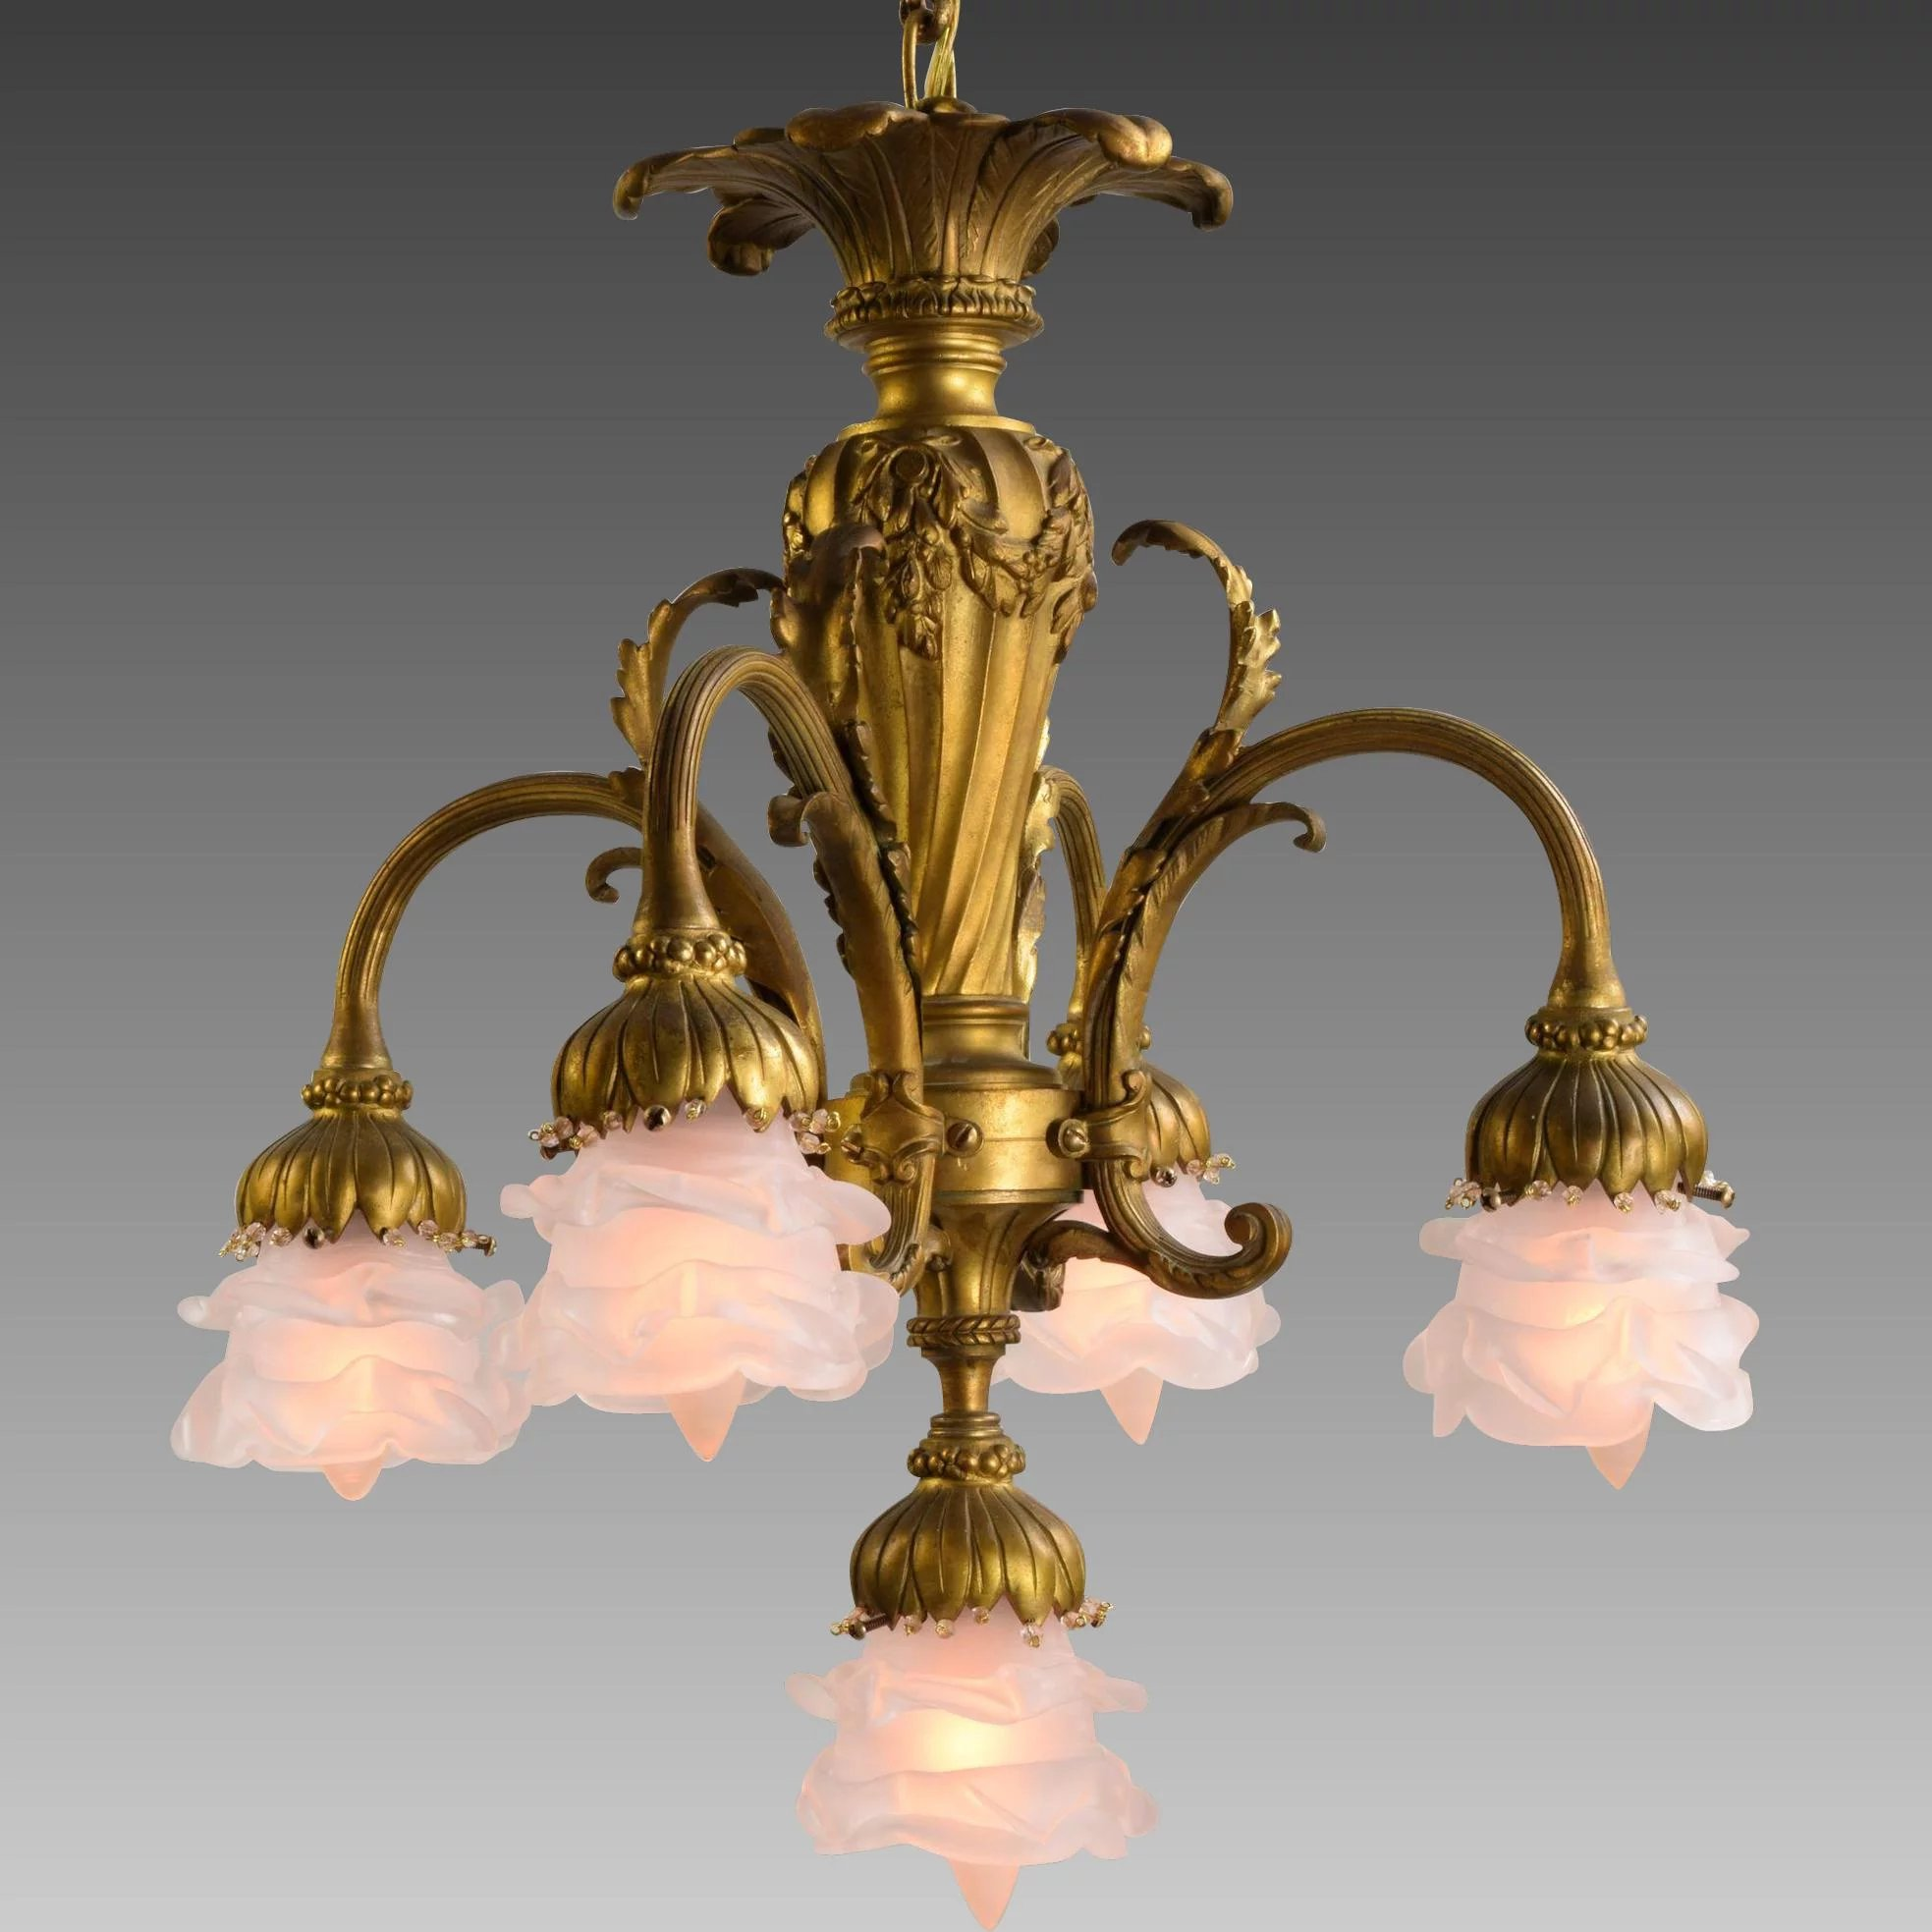 Antique French Gilt Bronze 5 Light Chandelier With Flower